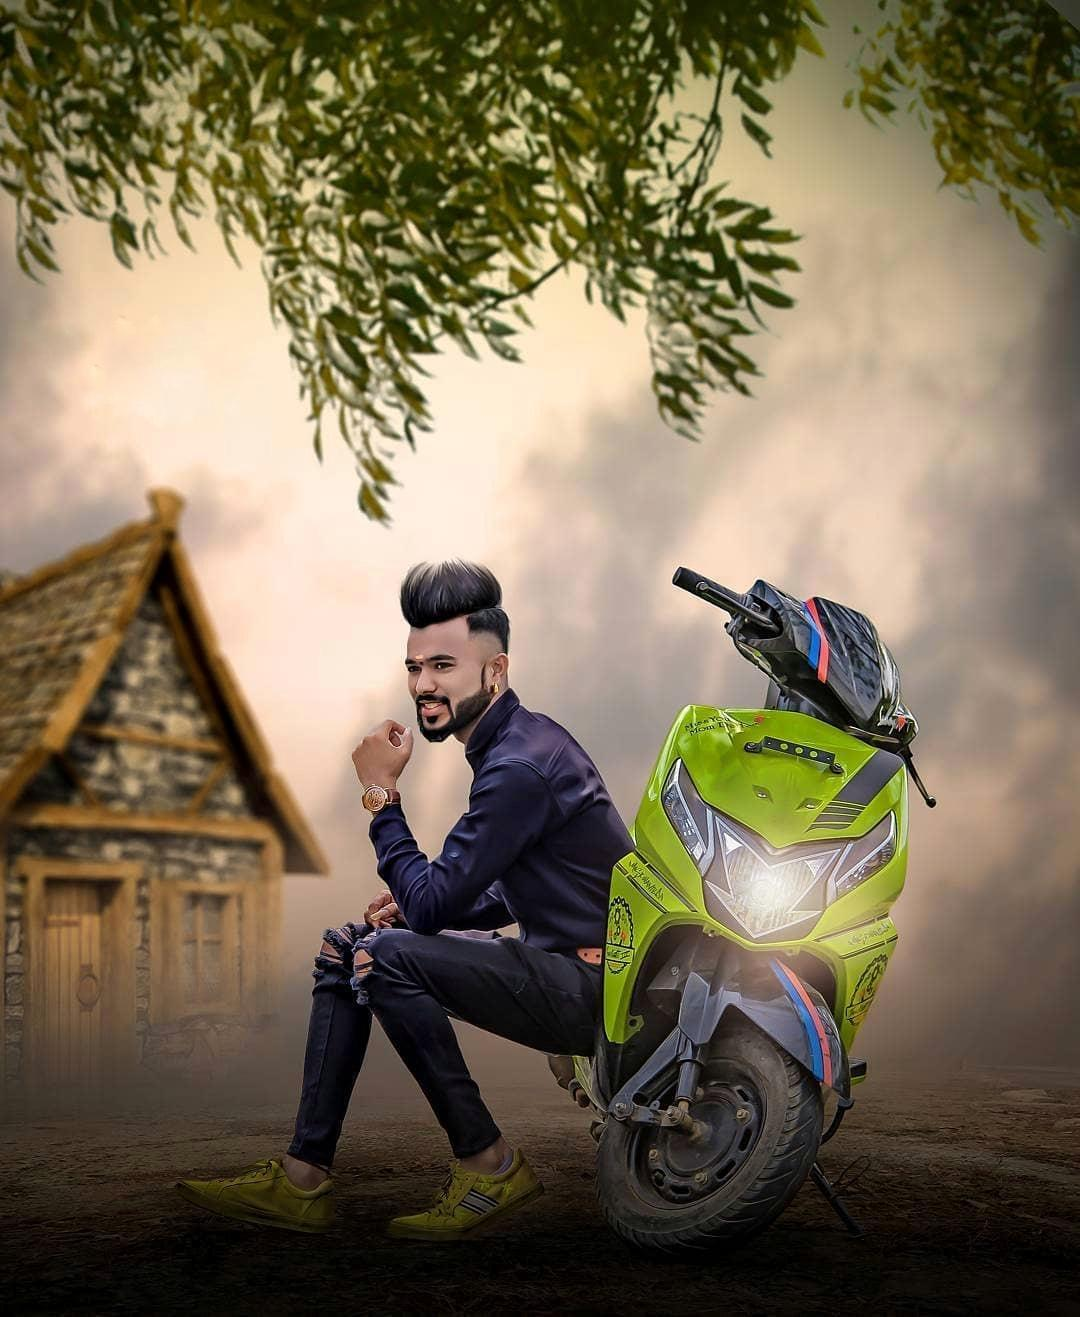 New Bike Poses For Boys For Android Apk Download